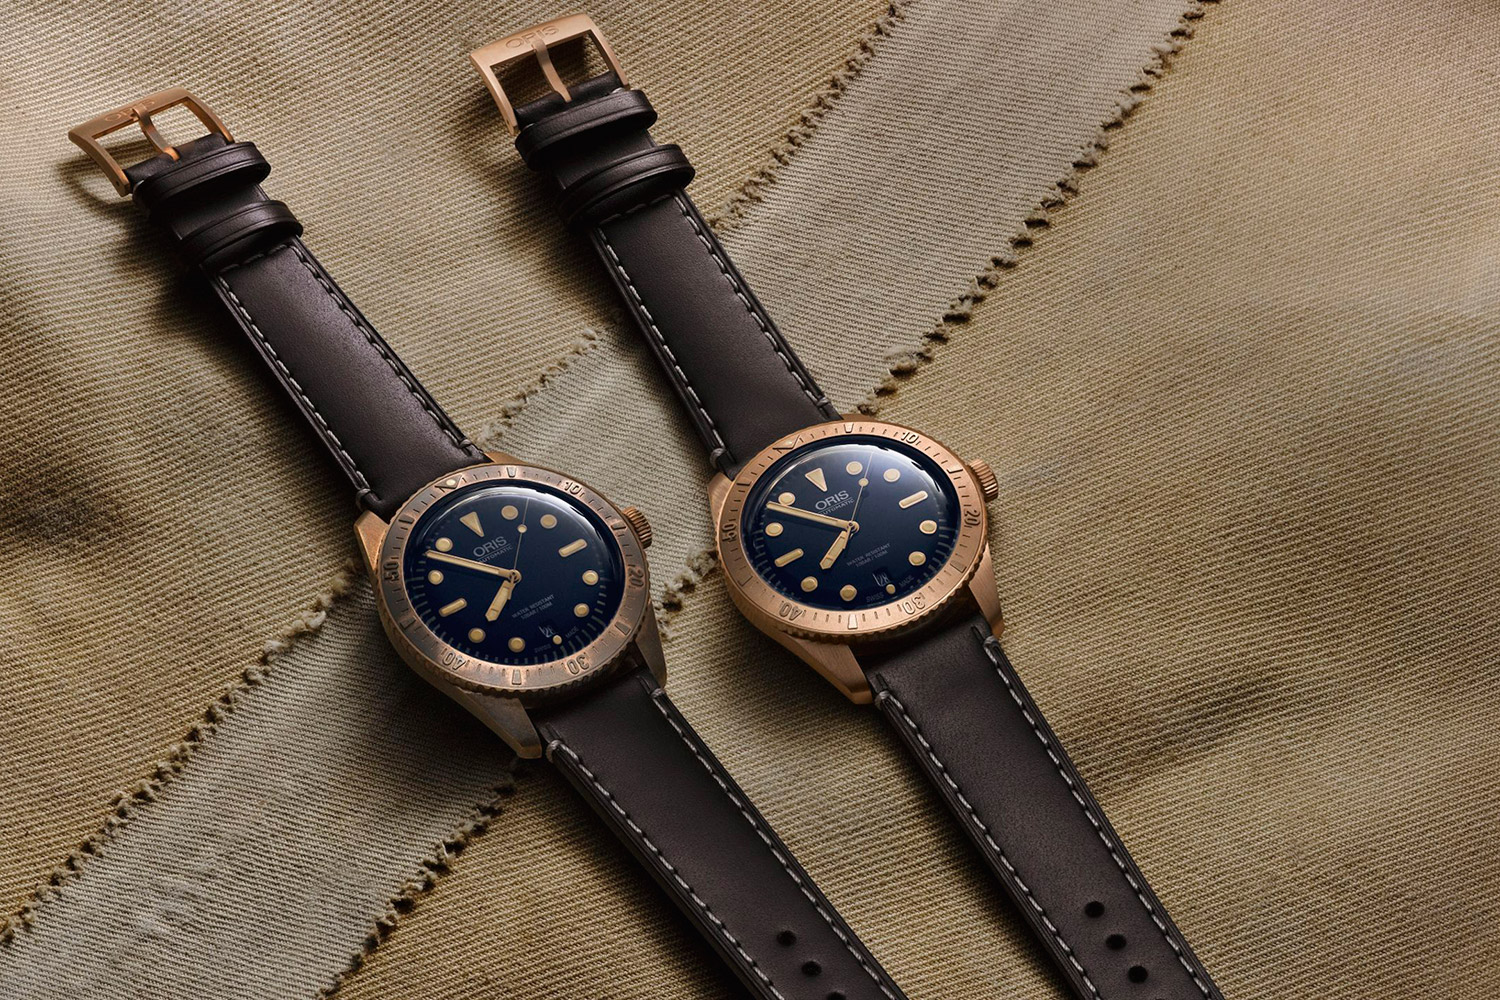 oris-carl-brashear-limited-edition-watch-01